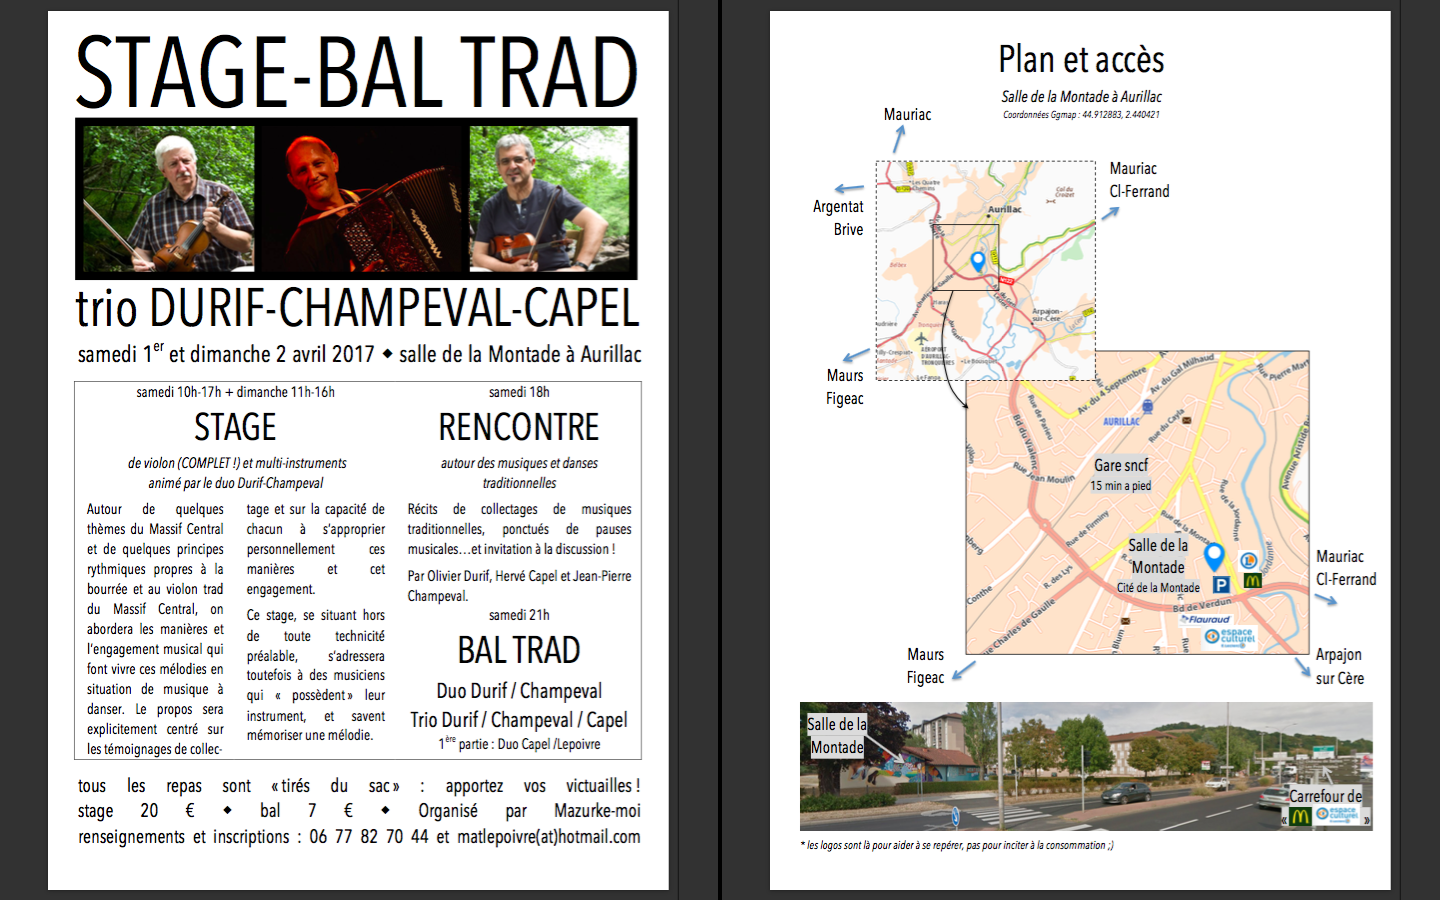 stage-bal-trad-durif_15470.png